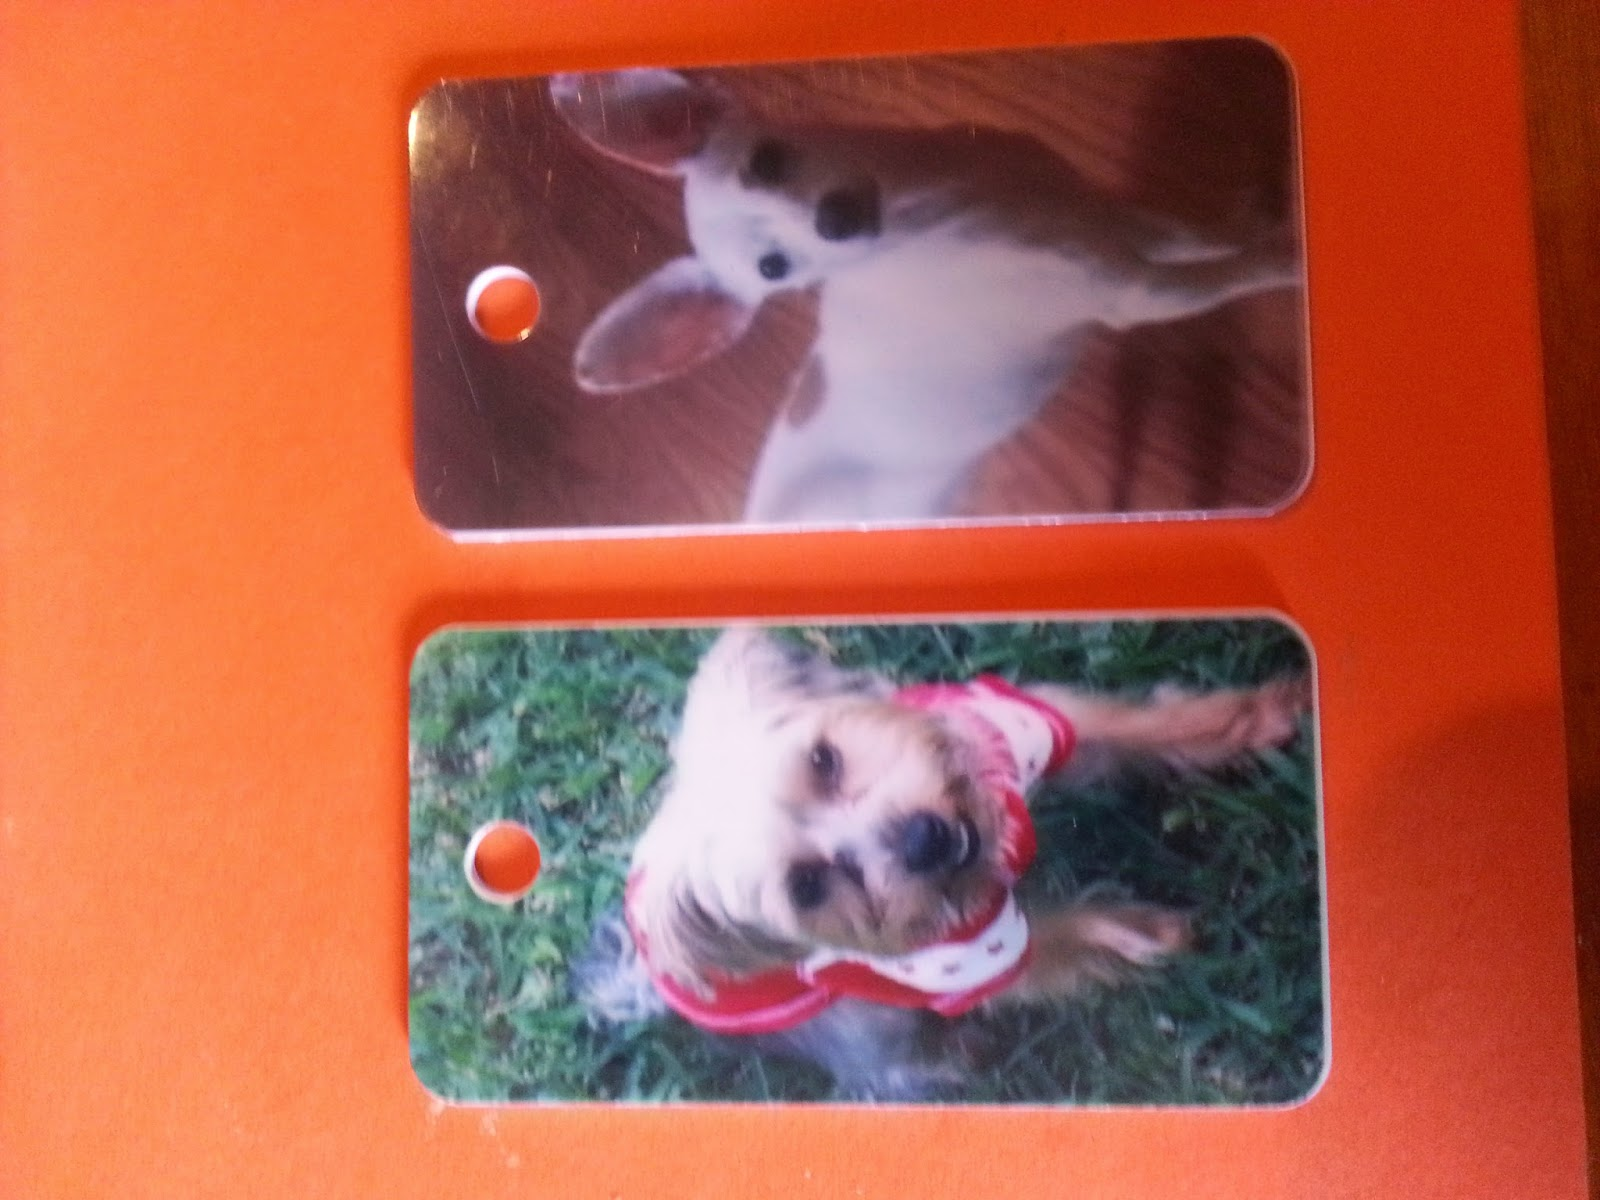 http://ramblingsofcassie.blogspot.com/2014/11/jolly-awesome-pet-tags.html